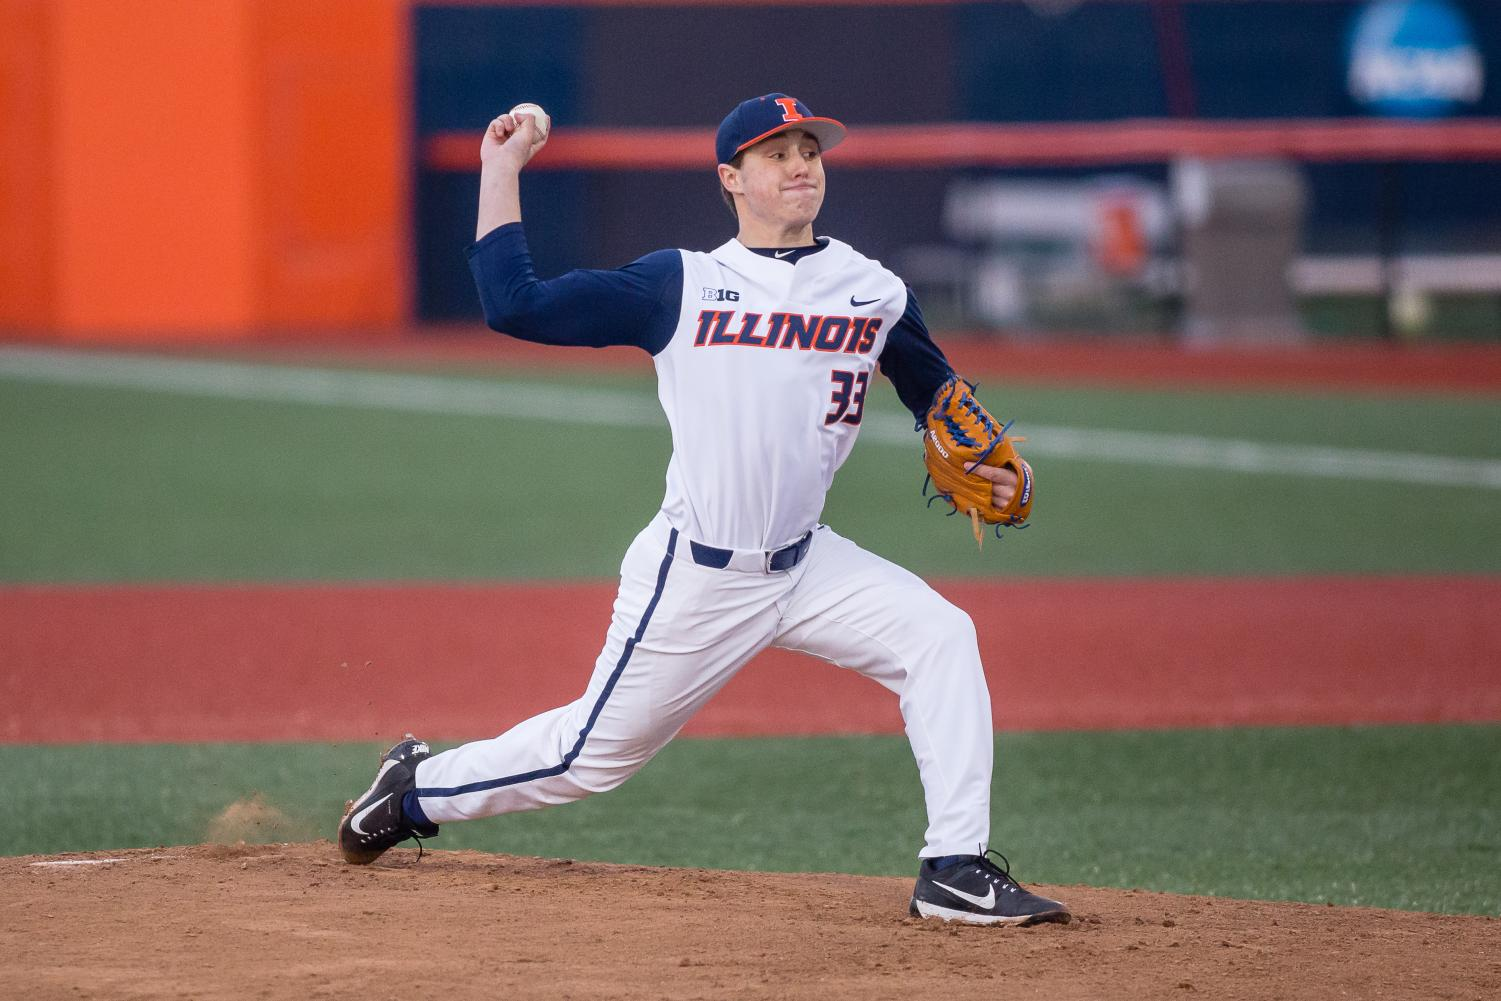 Illinois starting pitcher Quinn Snarskis throws a pitch during the Big Ten season opener at Illinois Field Friday against the Iowa Hawkeyes. Iowa won the game 8-5.